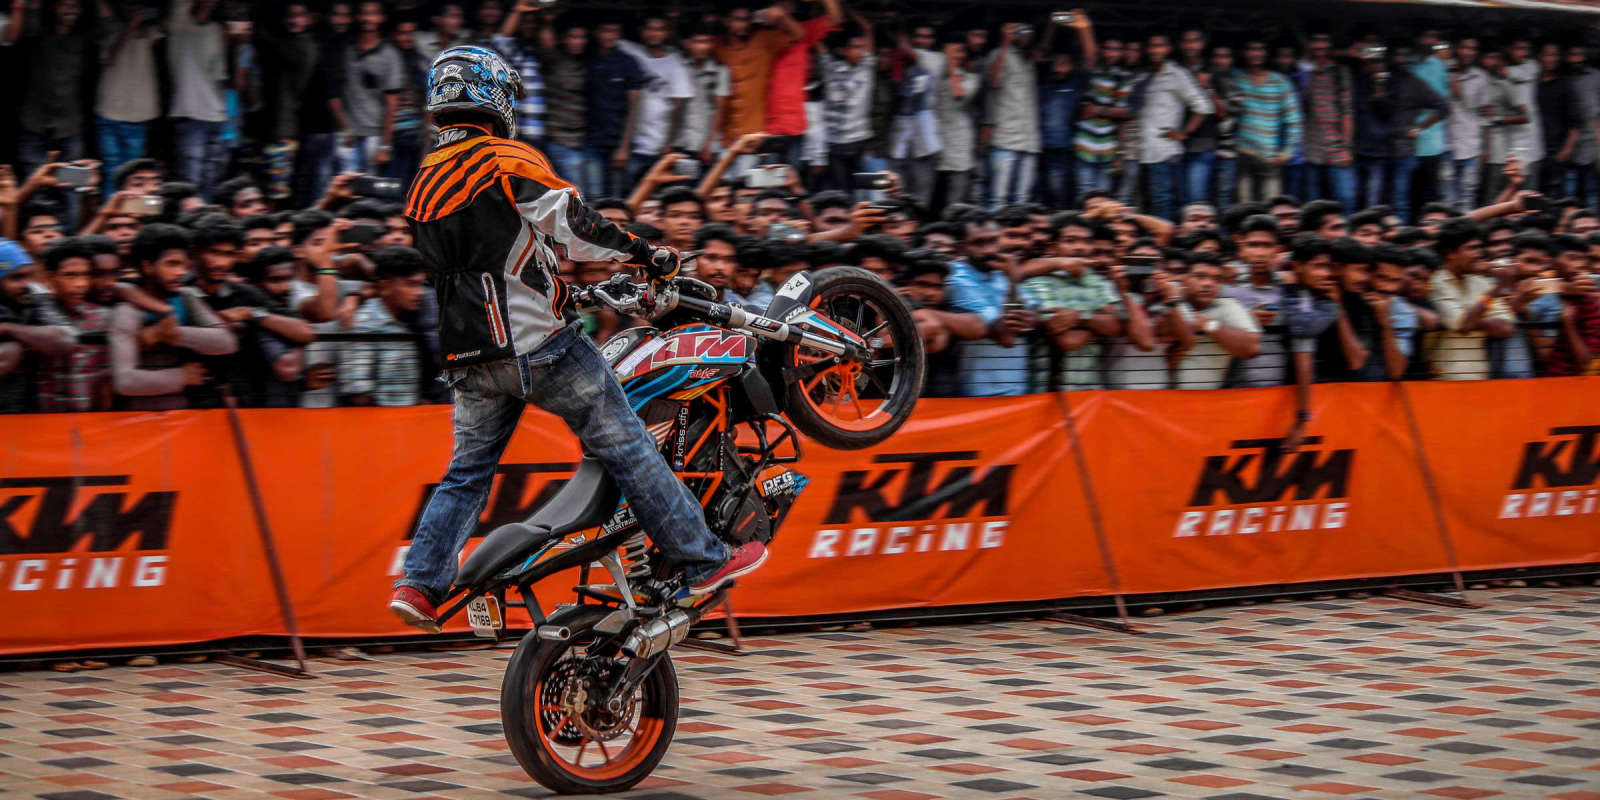 professional stunt bike team from India. Used as ambassadors to support Monster Energy launch in the market.